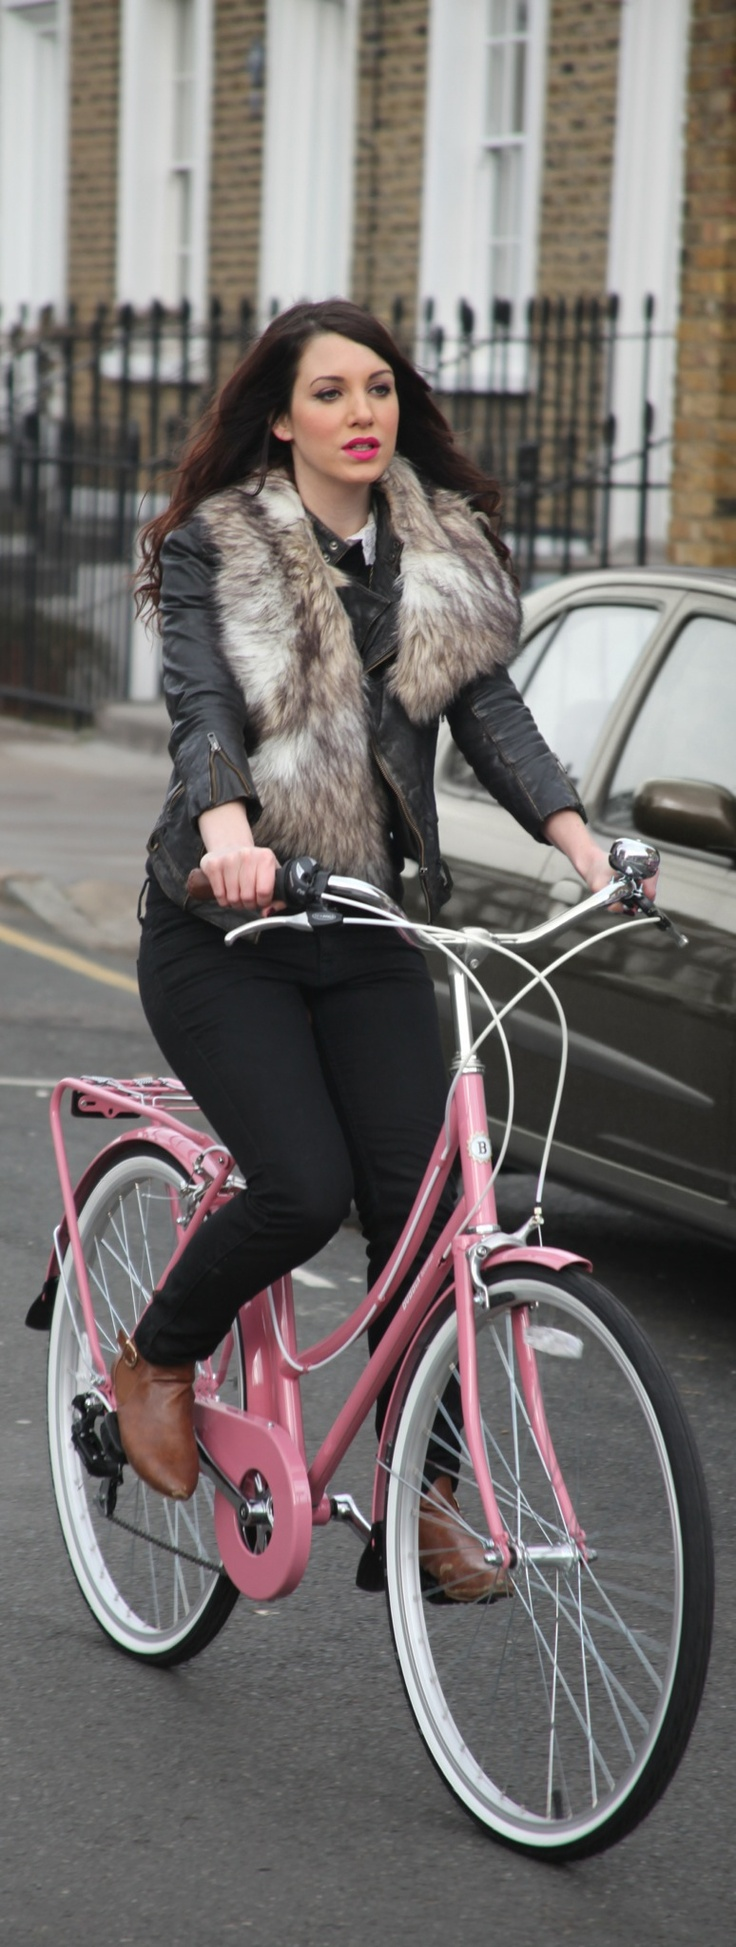 Another lovely commuting bicycle by Bobbin Bikes - this is the Bobbin Brownie in a gorgeous baby pink colourway. #bobbinbicycles